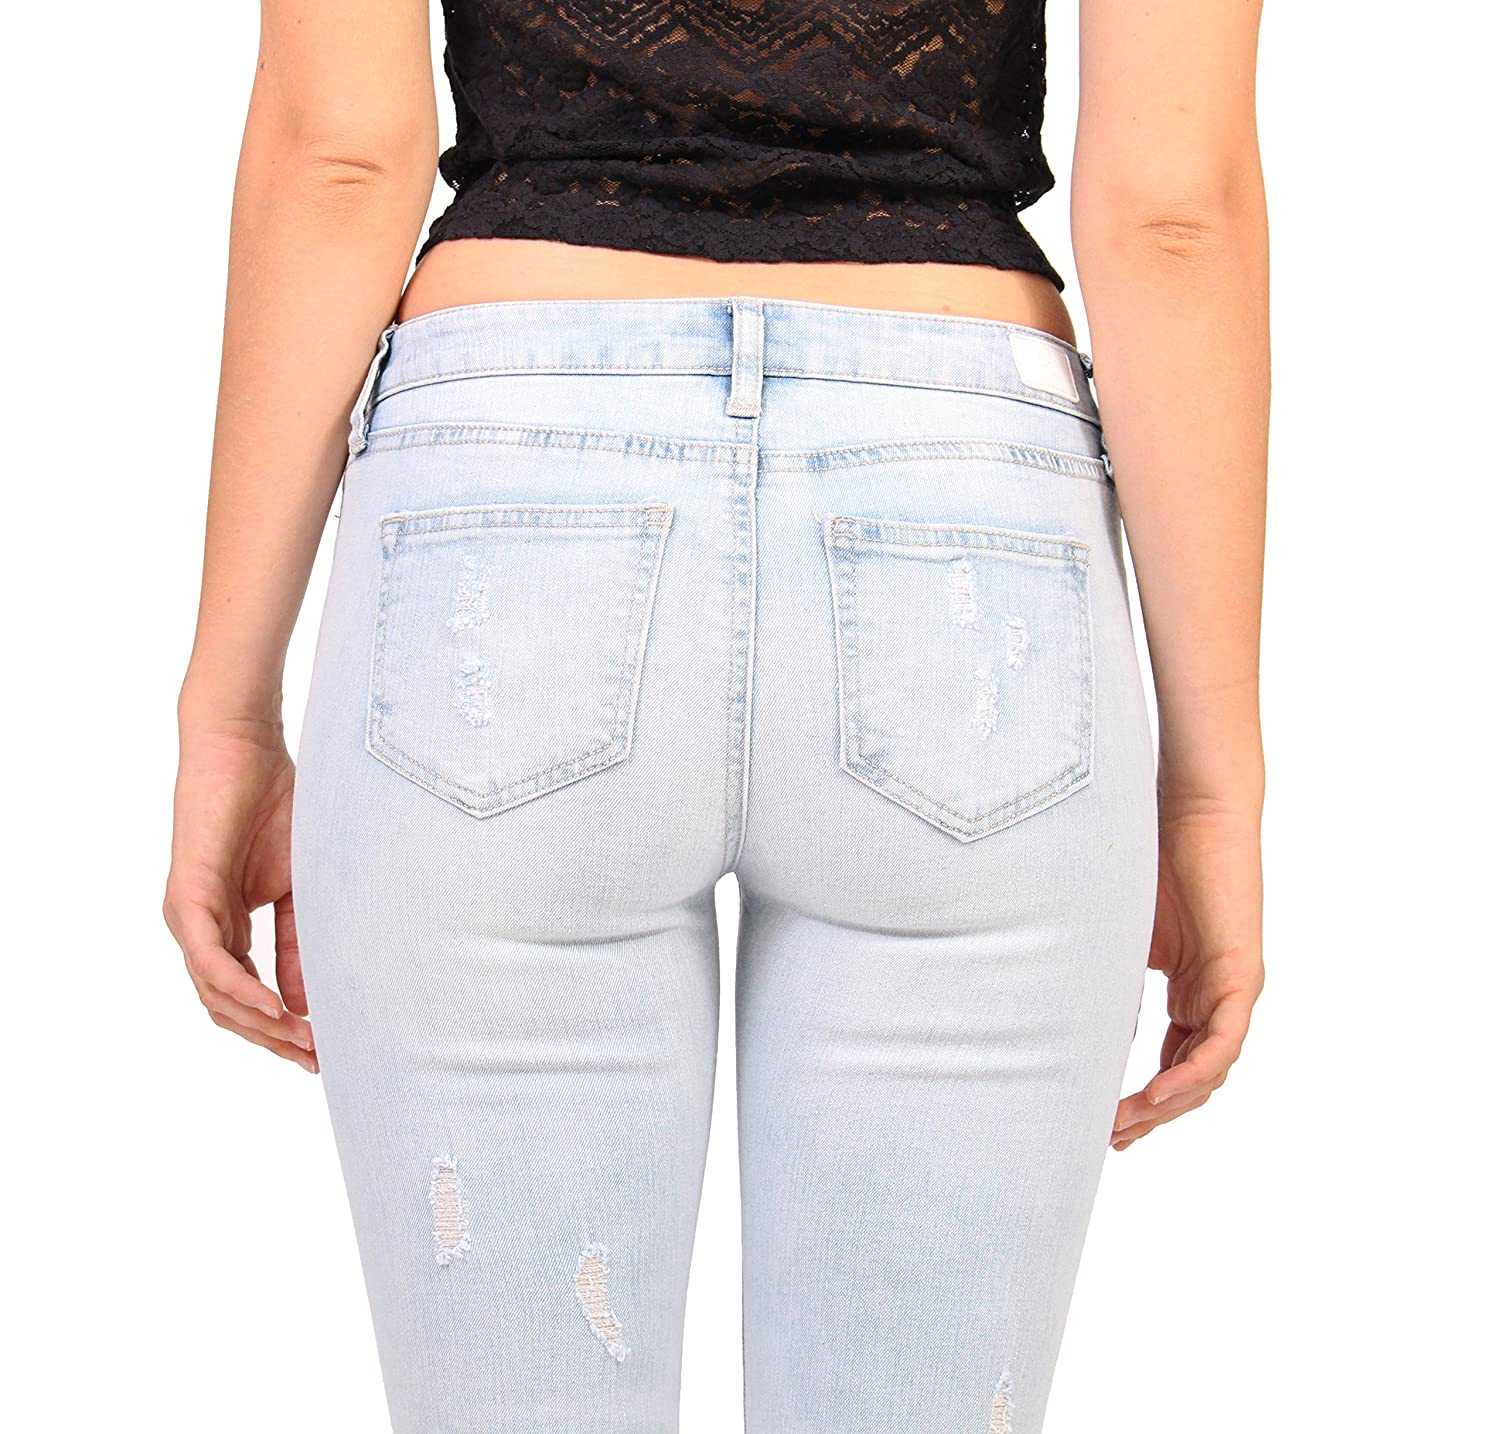 eb09ca7cdce Amazon.com: Celebrity Pink Jeans Women Distressed Ankle Skinny Jeans:  Clothing